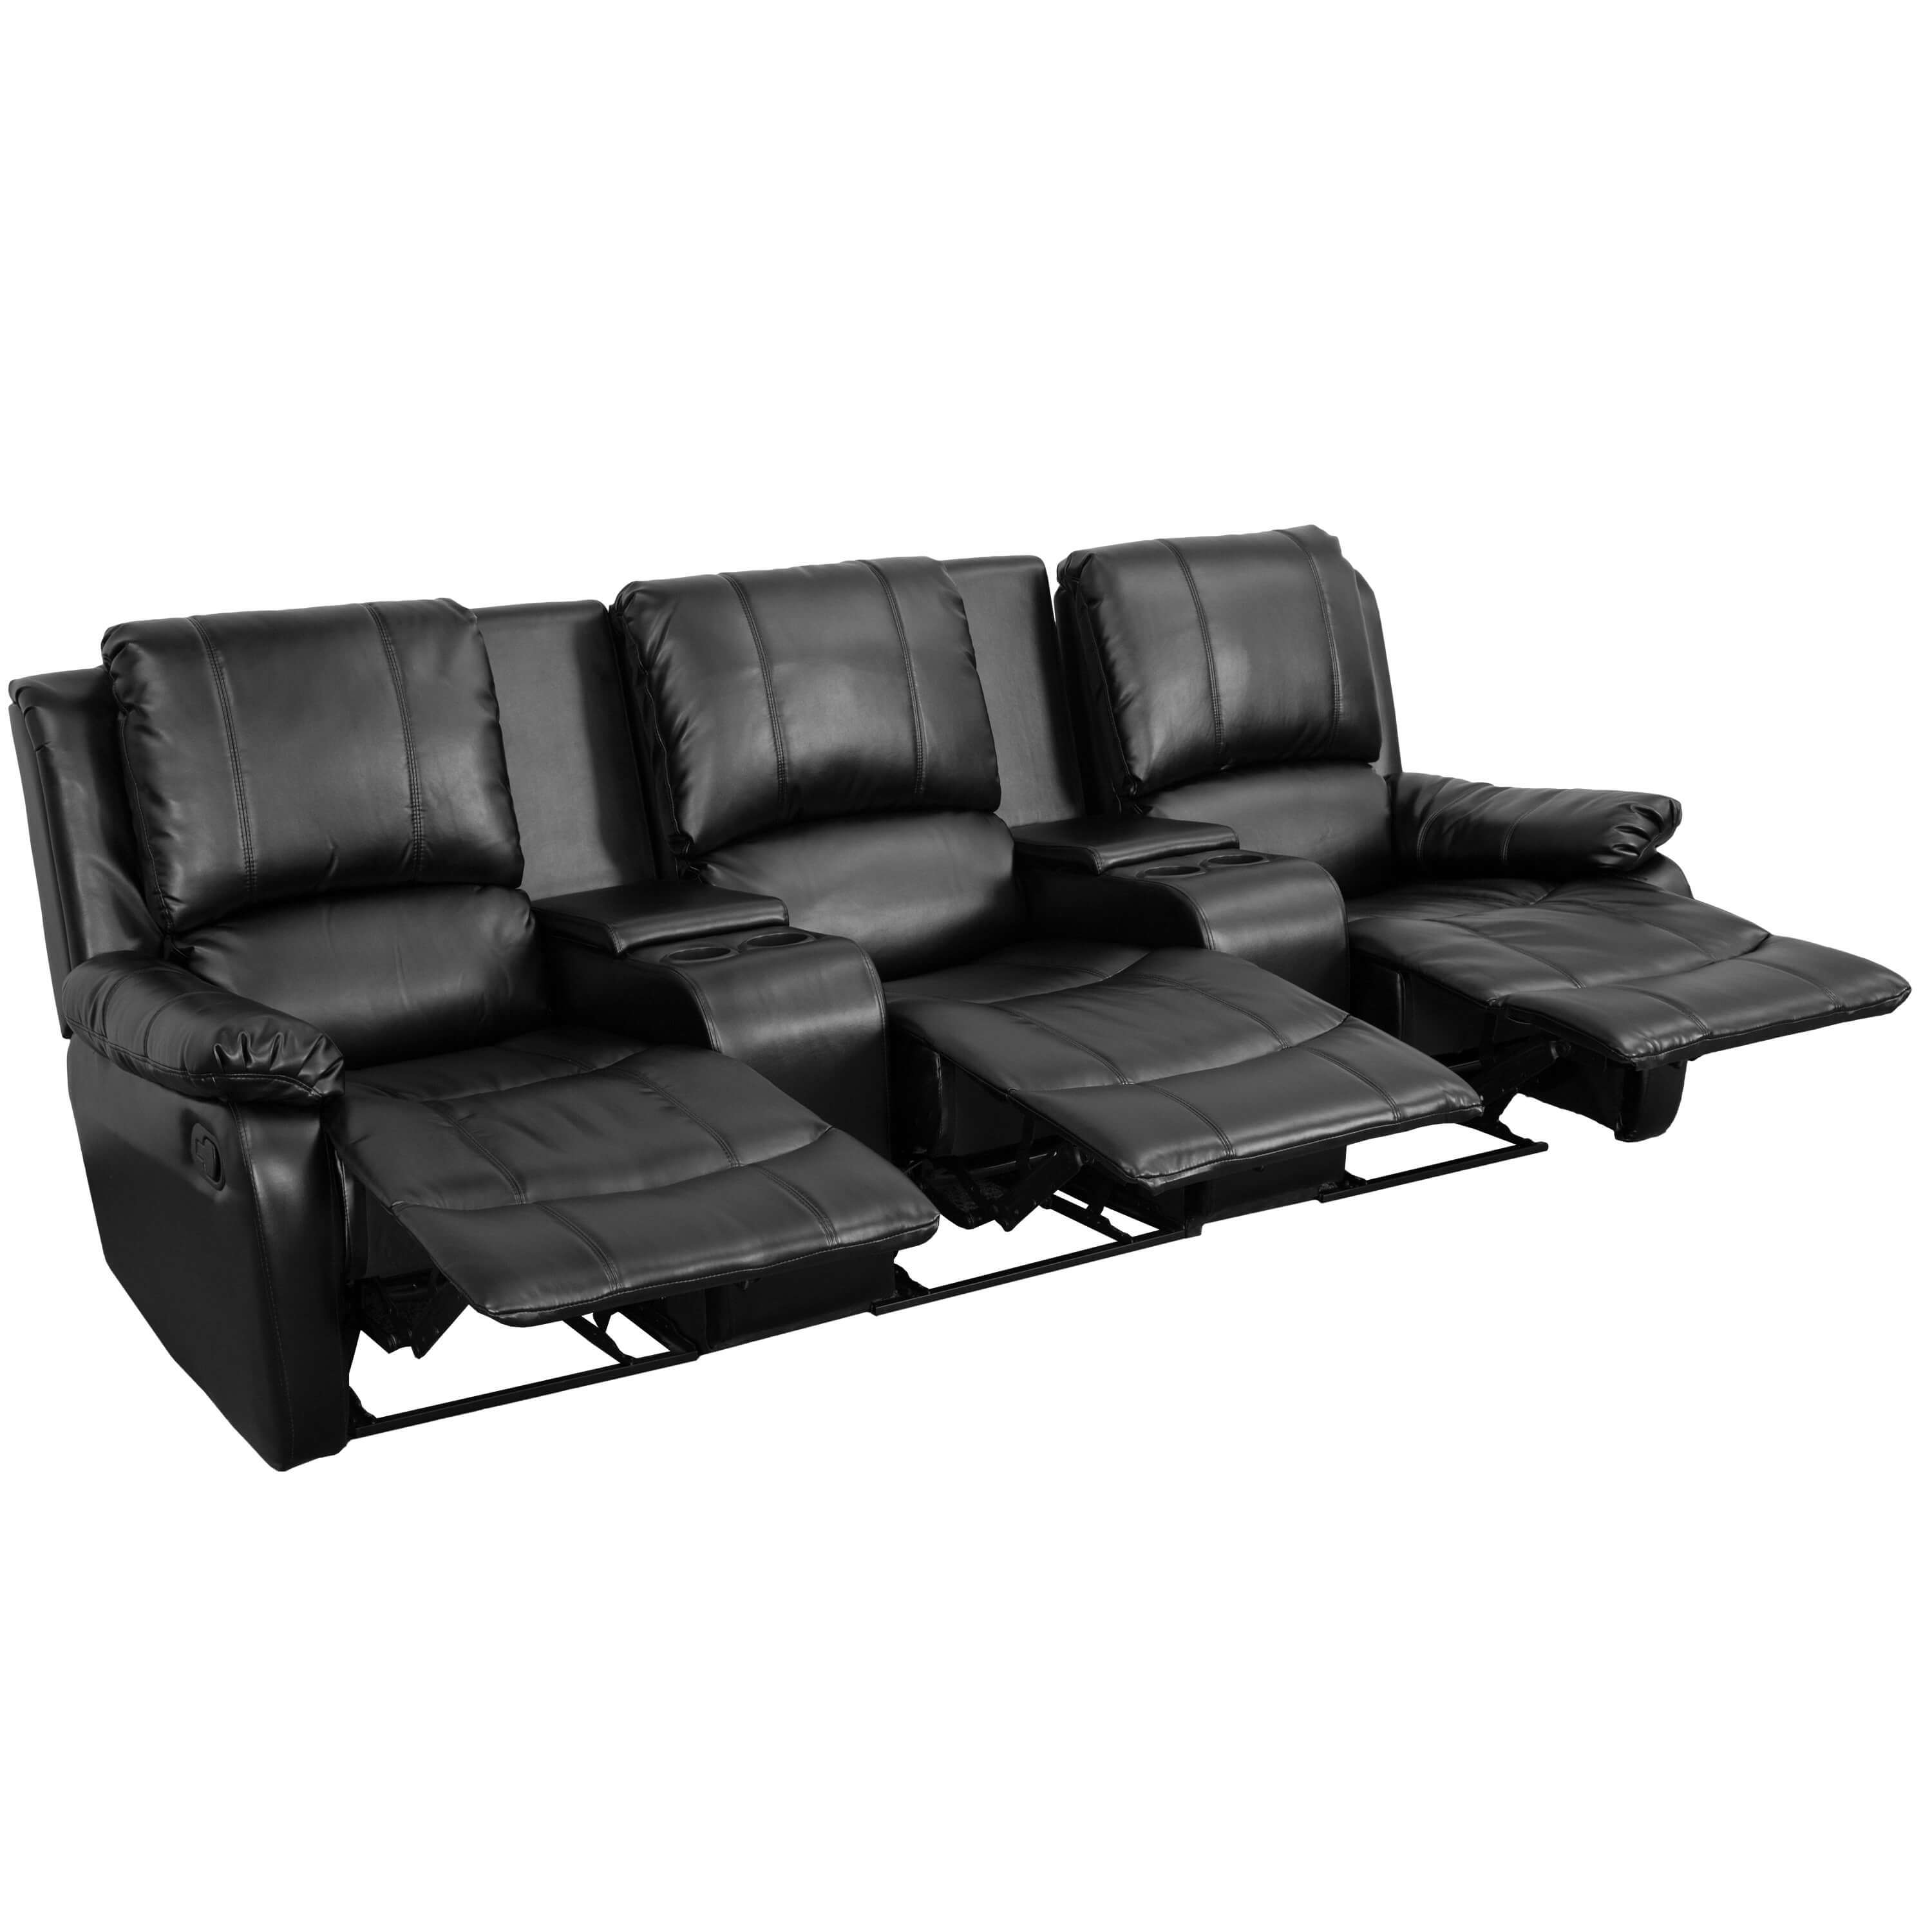 Leather theater chairs reclined view